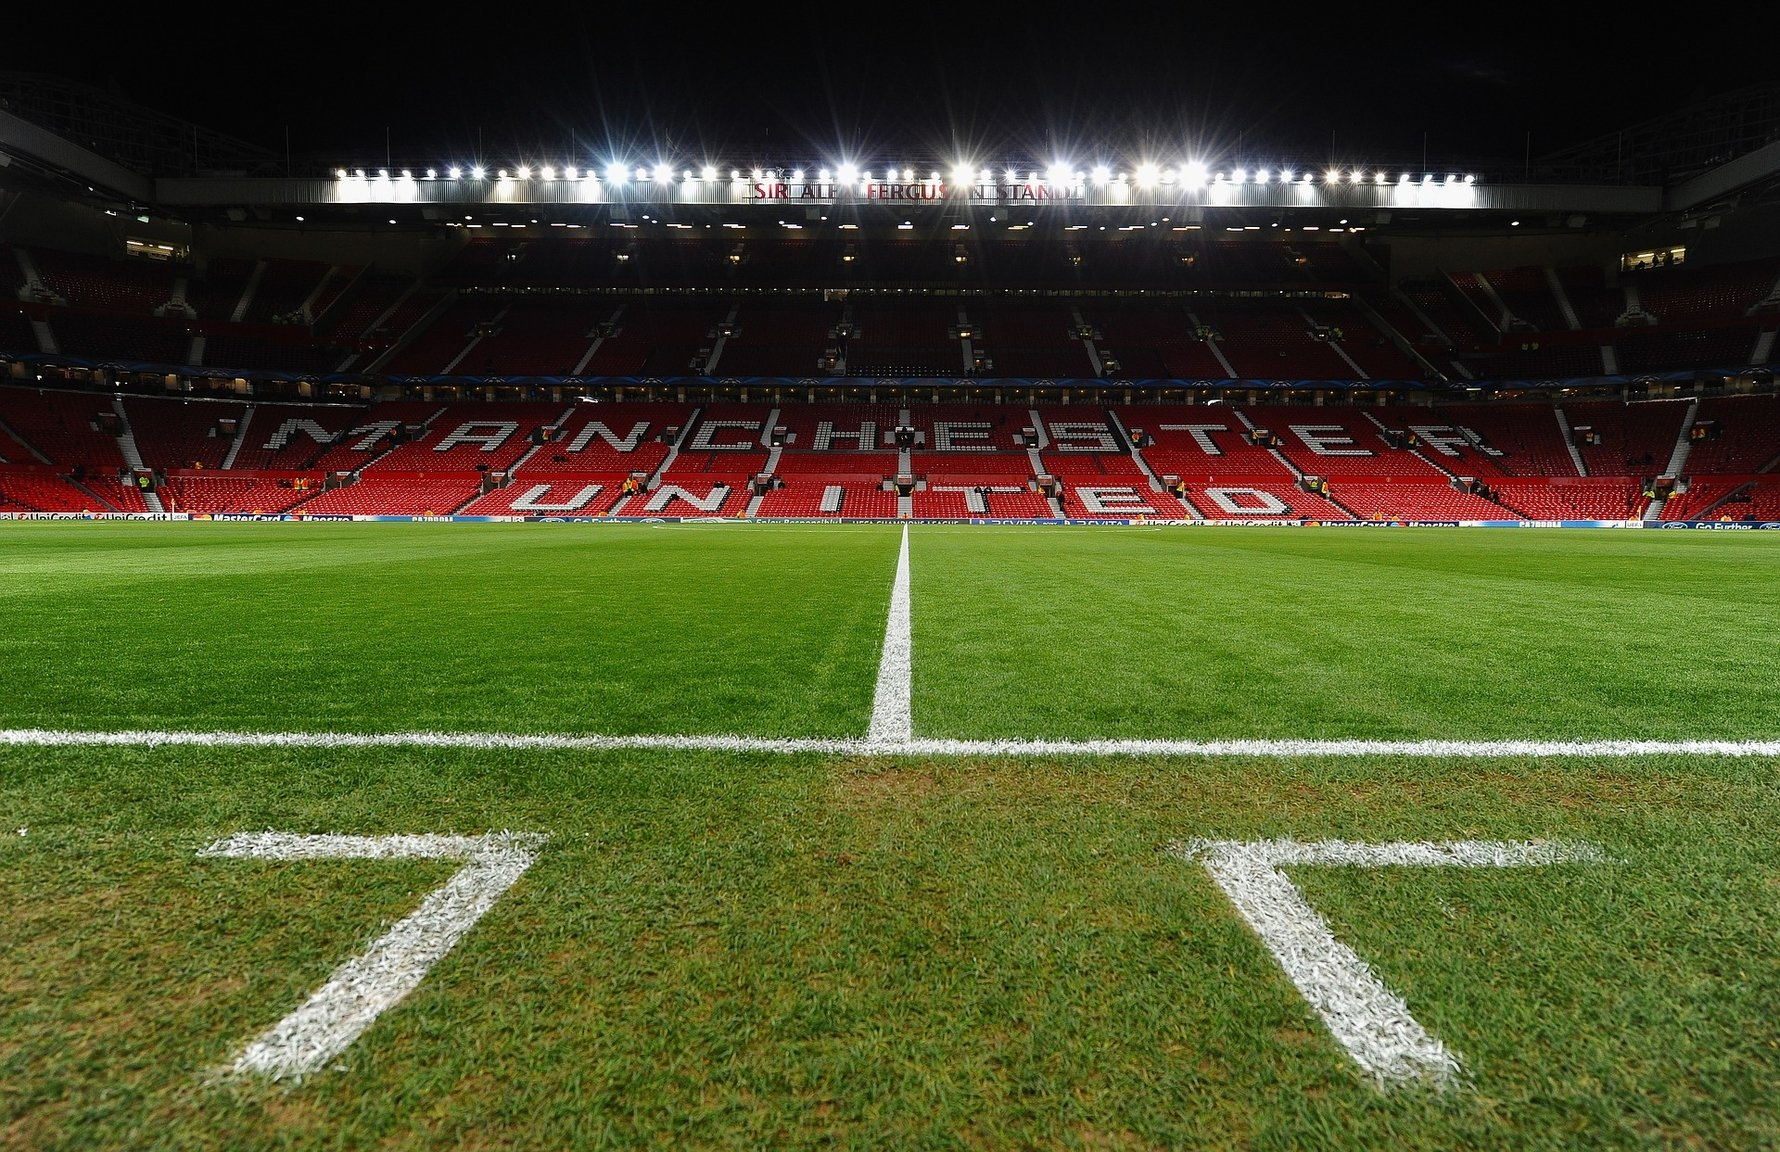 Guide to Old Trafford, Home of Manchester United in Manchester England © Jakub Mularski - Pixabay